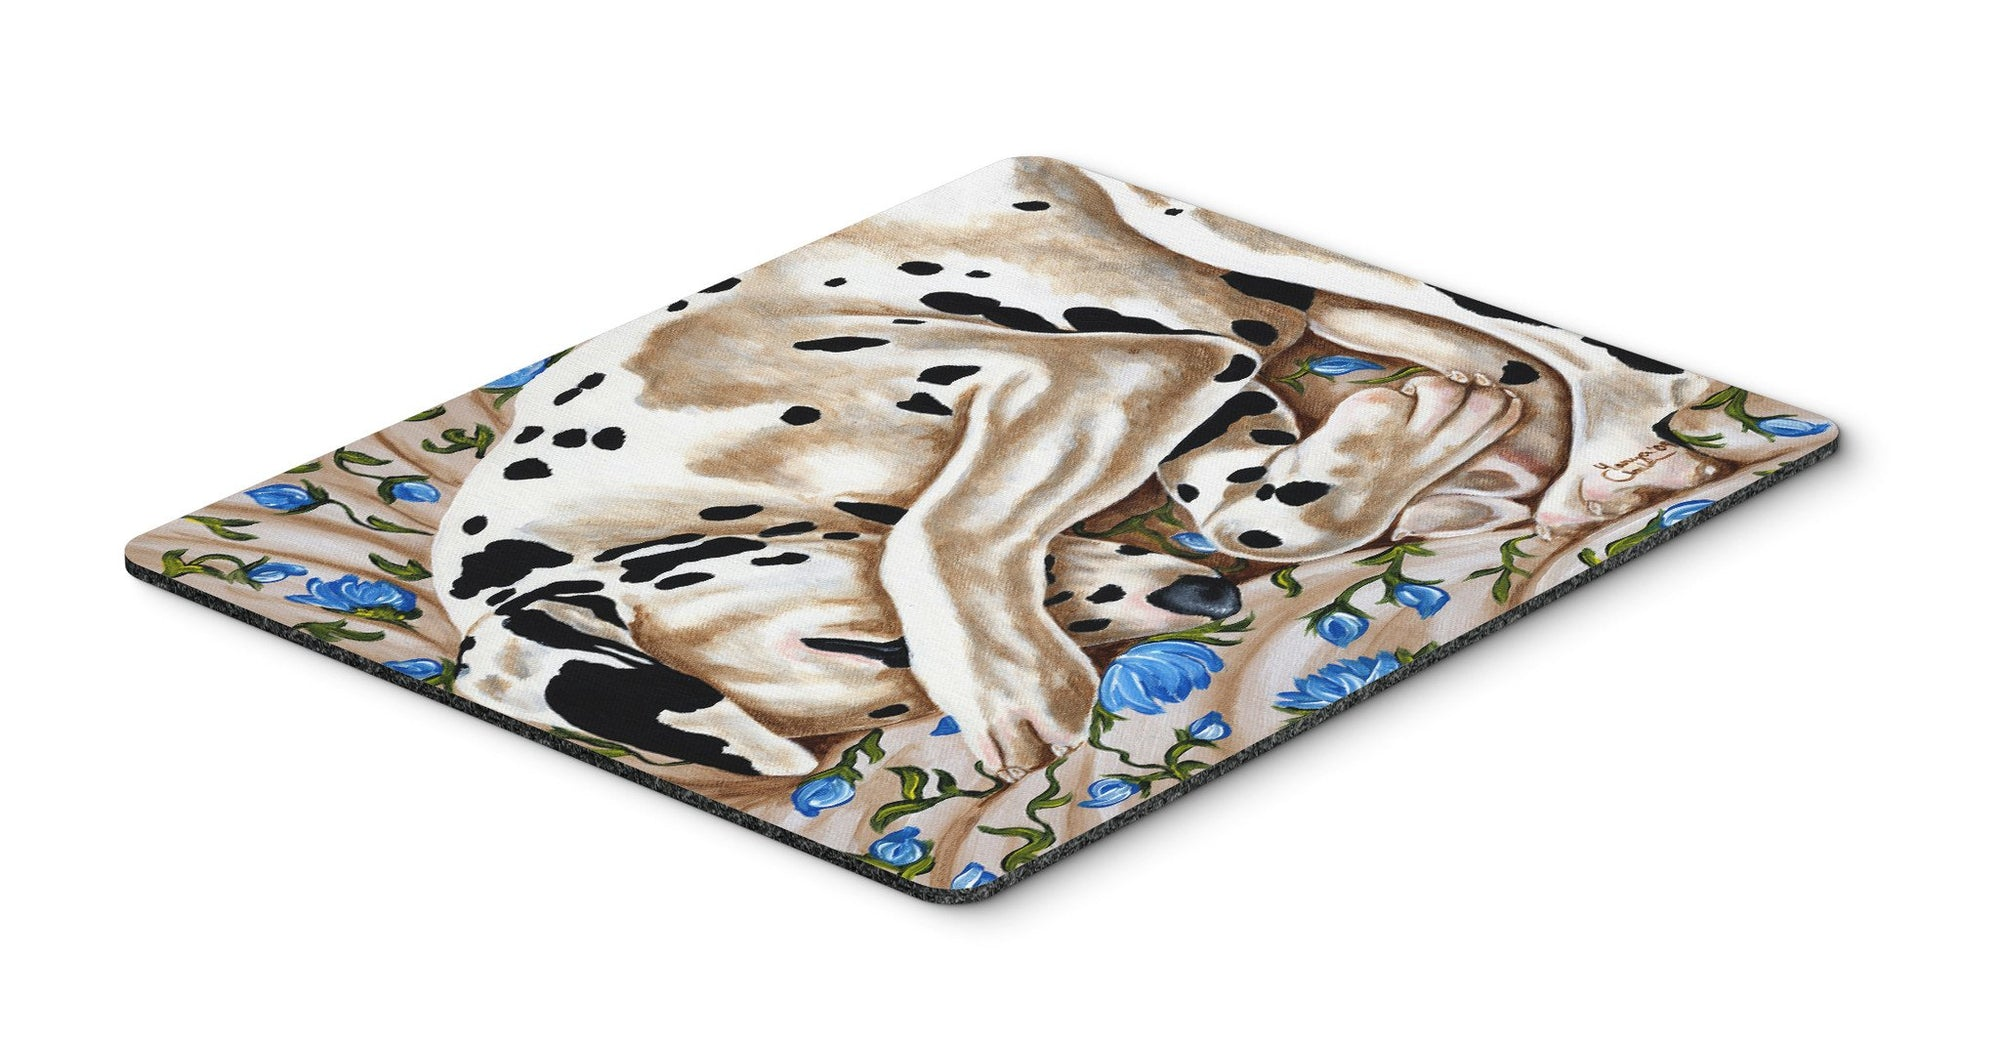 Bed of Roses Dalmatian Mouse Pad, Hot Pad or Trivet AMB1407MP by Caroline's Treasures